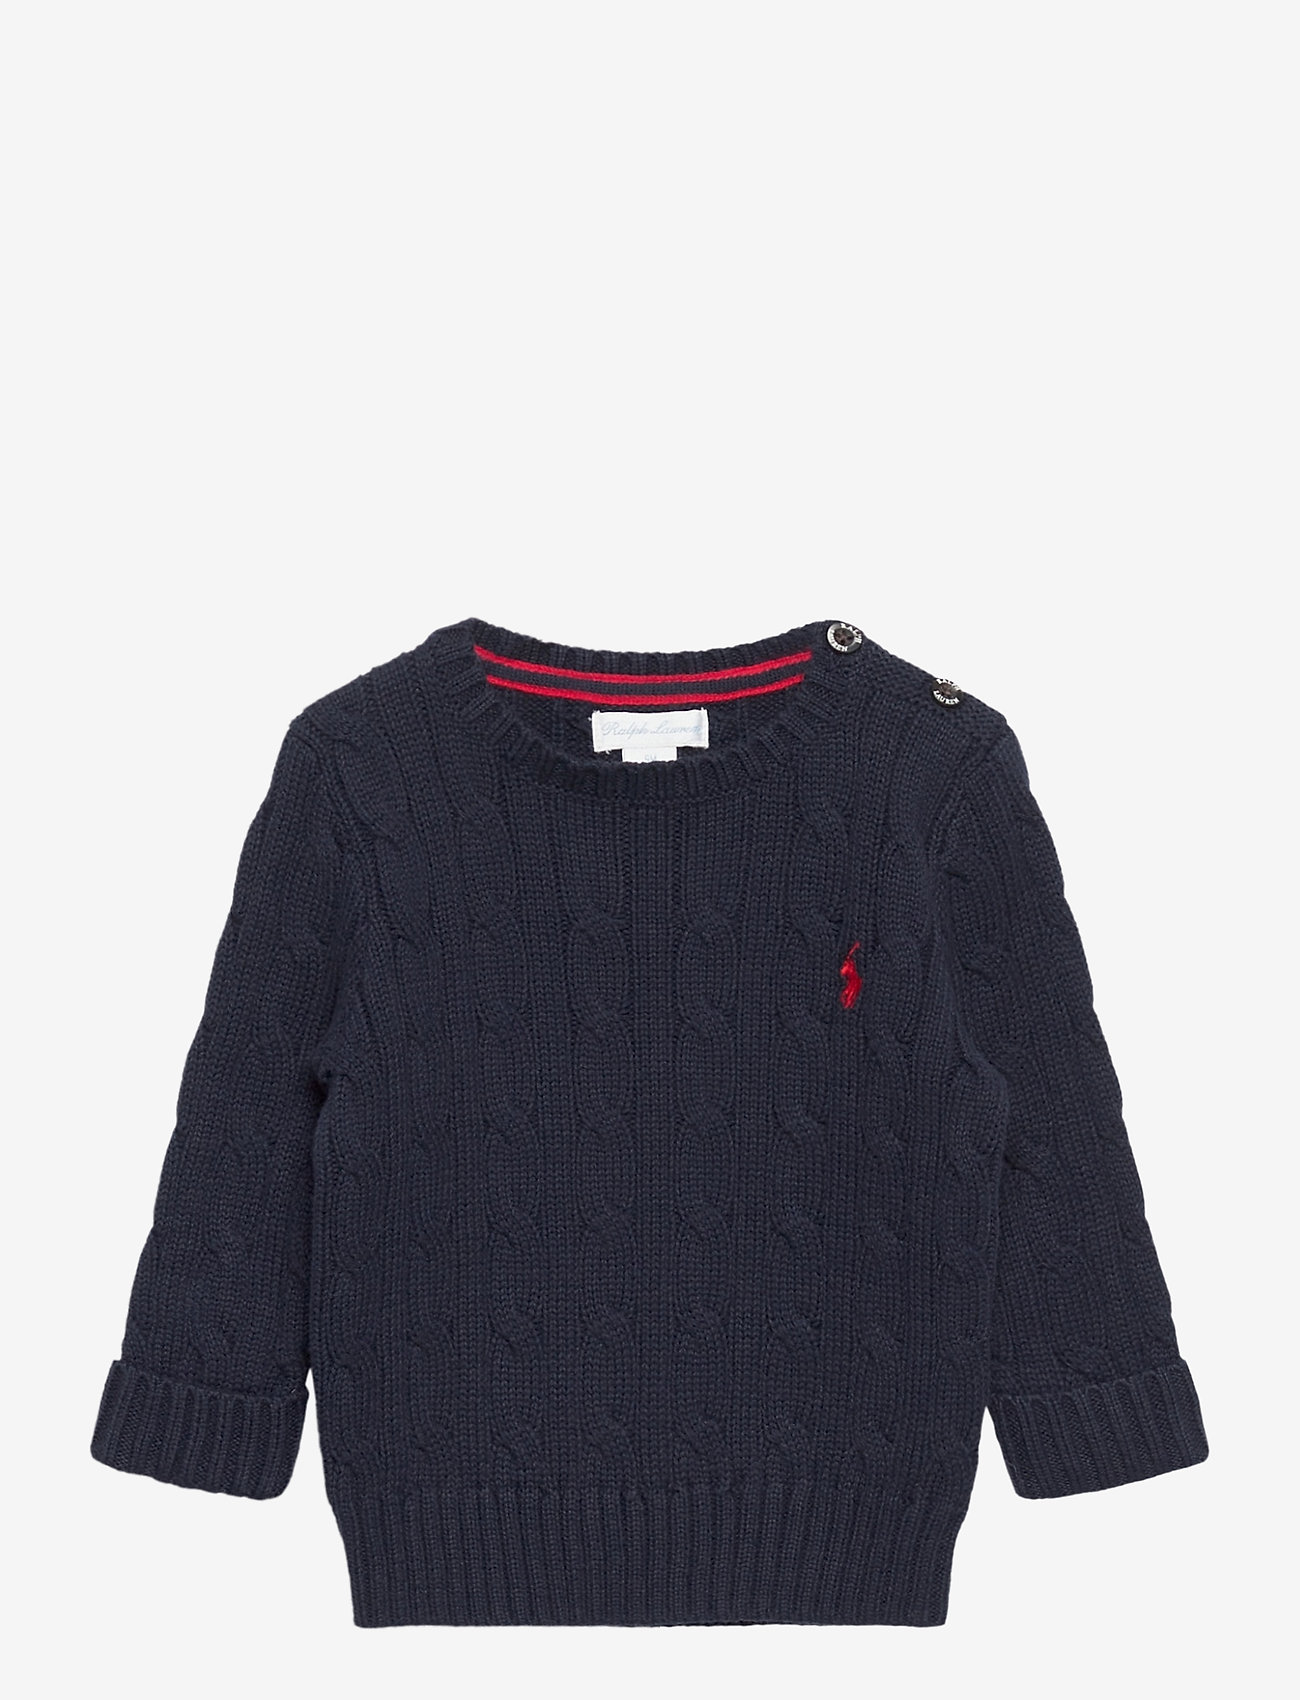 Ralph Lauren Baby - Cable-Knit Cotton Sweater - strik - rl navy - 0